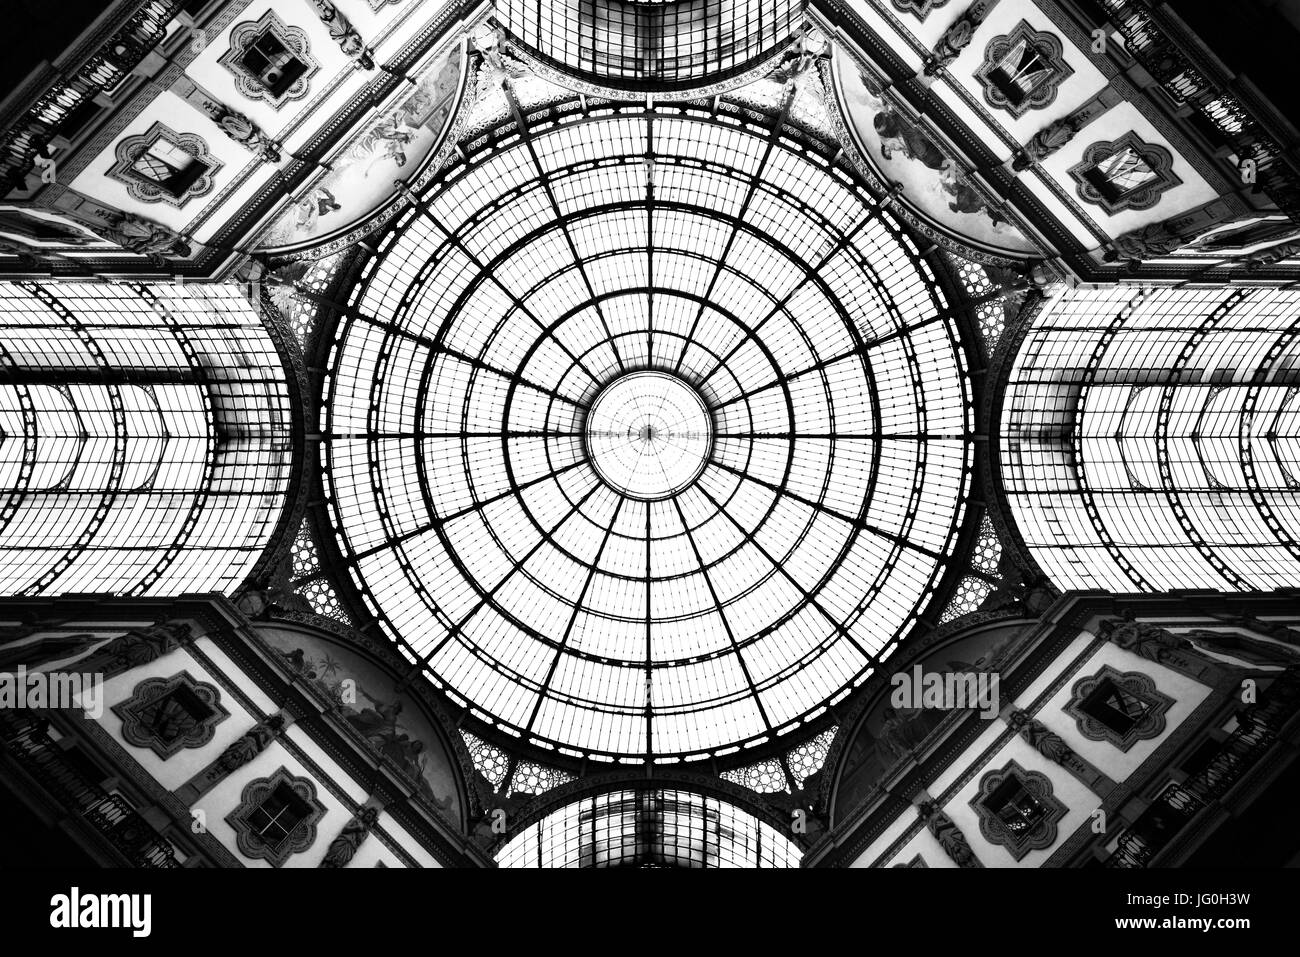 The Galleria Vittorio Emanuele II complex in Milan - Stock Image